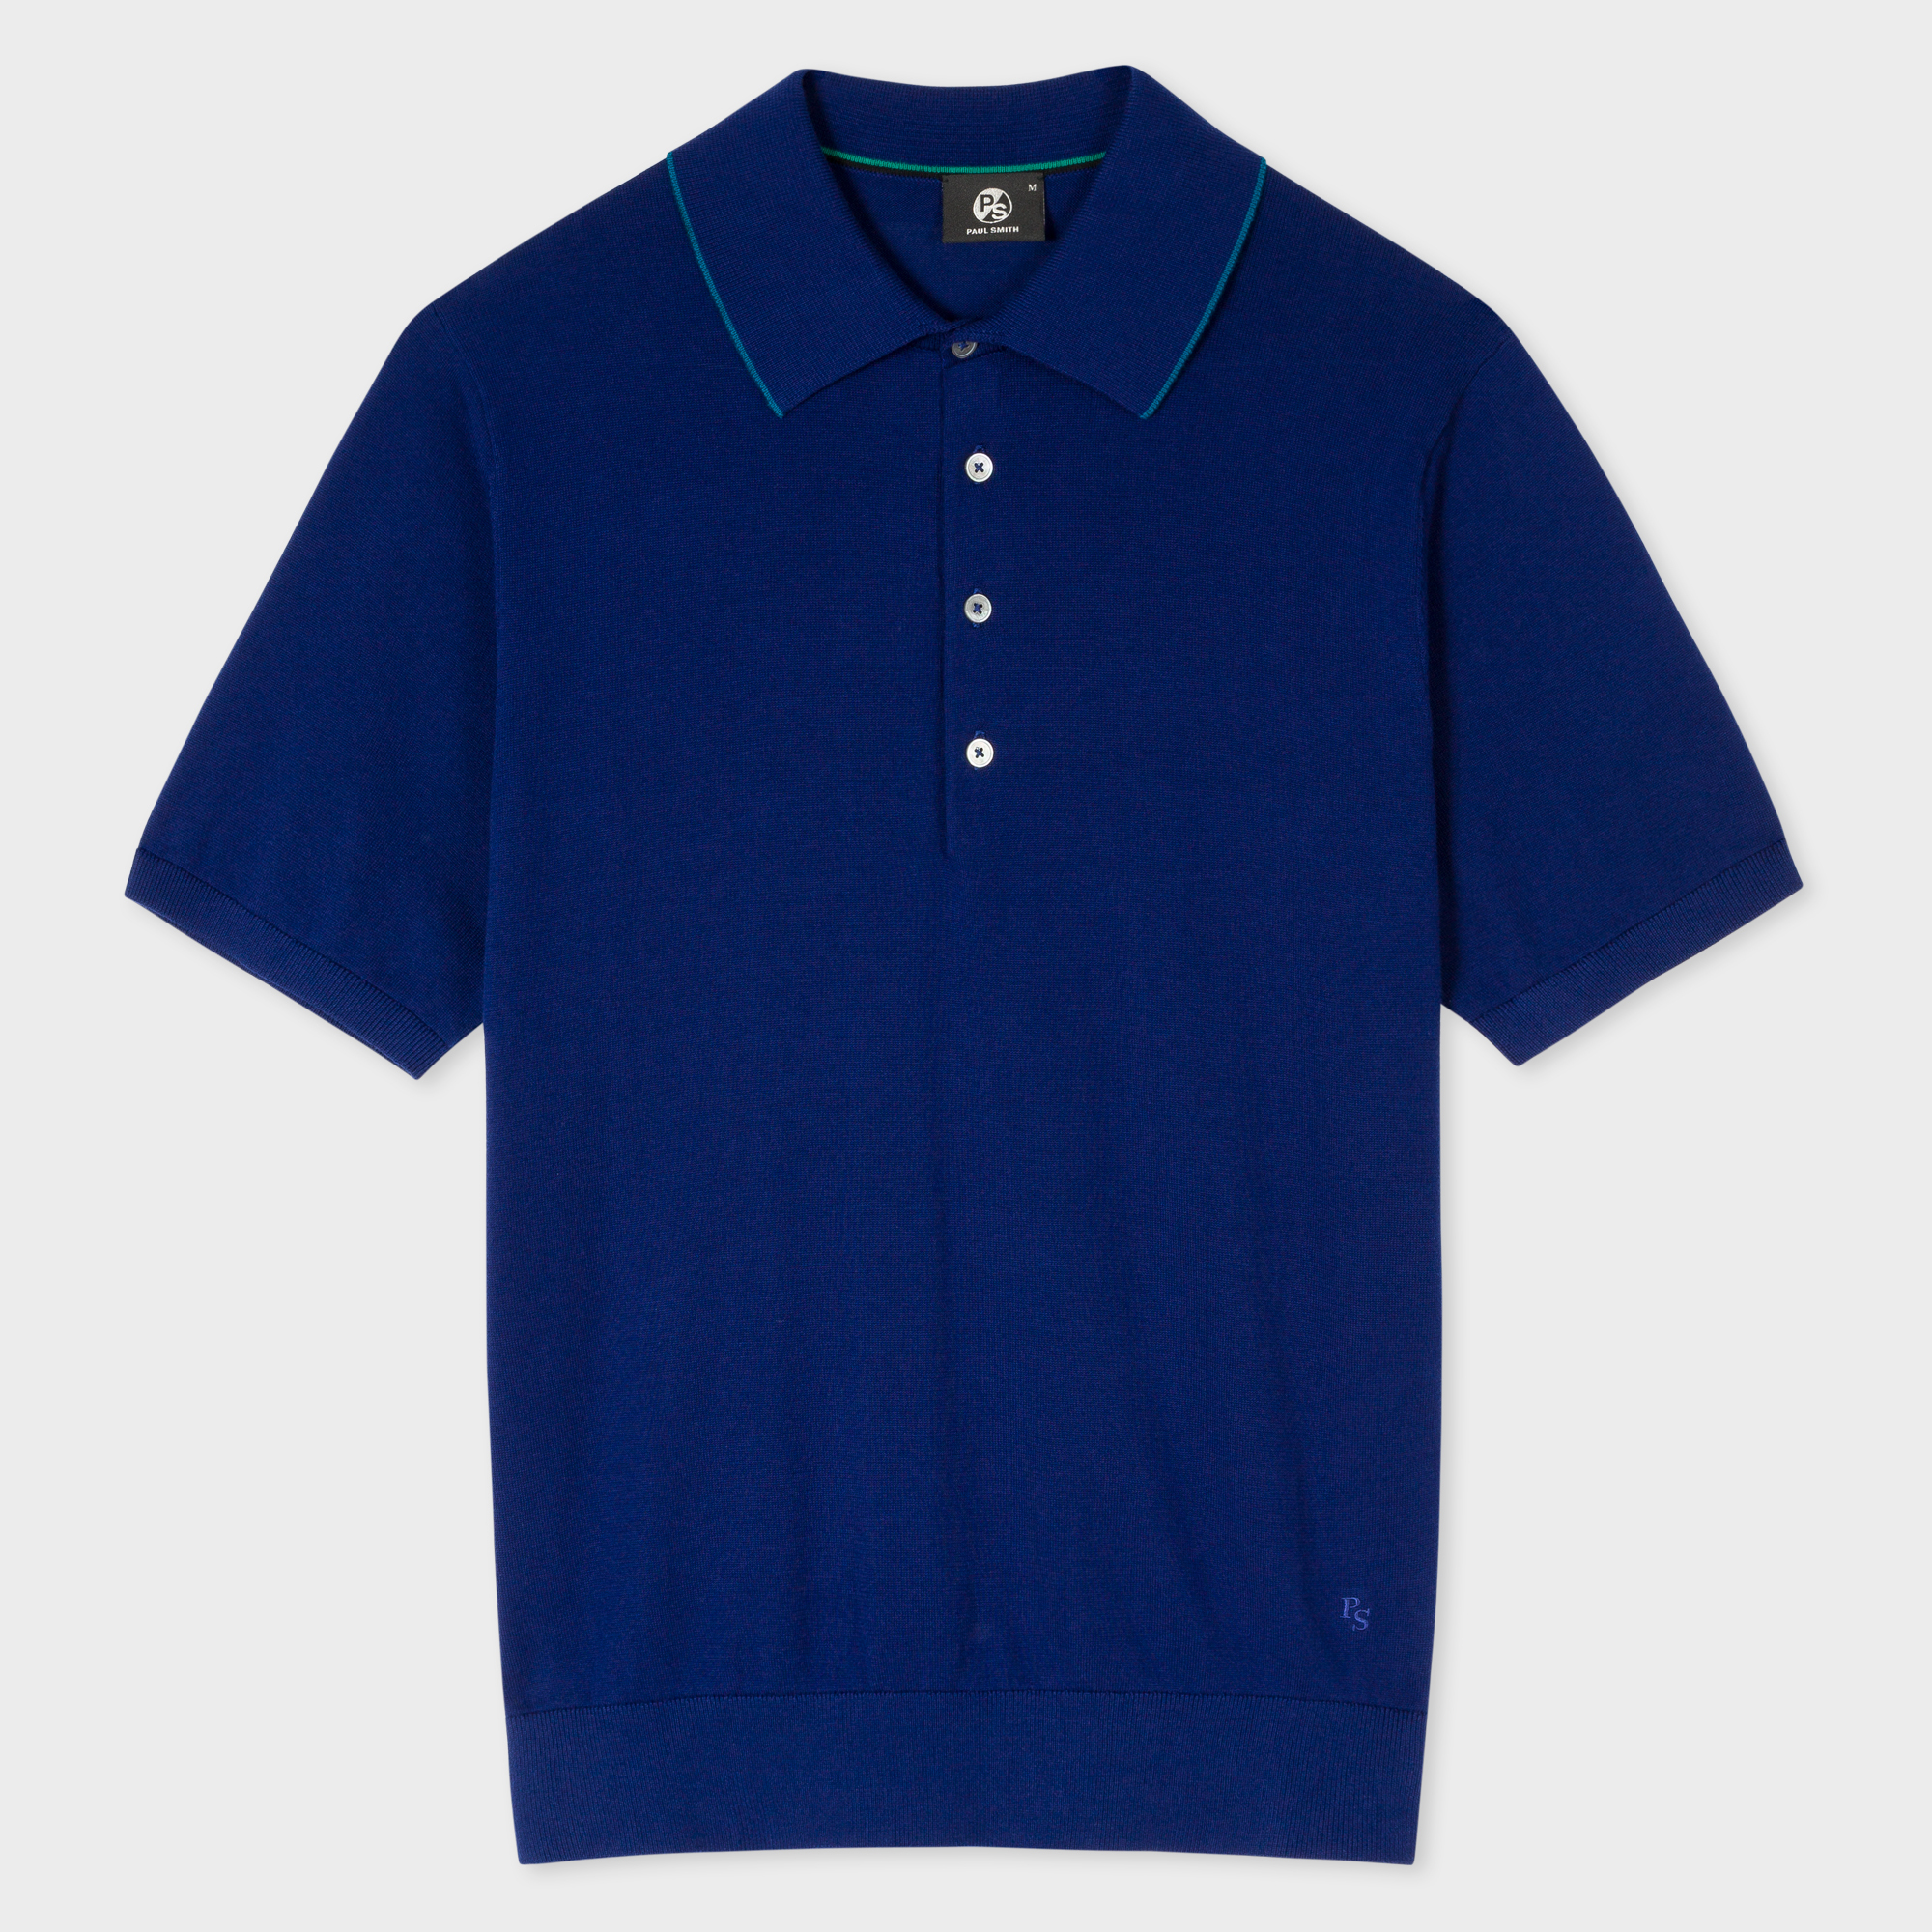 Paul Smith Men's Indigo Knitted Cotton Polo Shirt With Petrol Collar Tipping